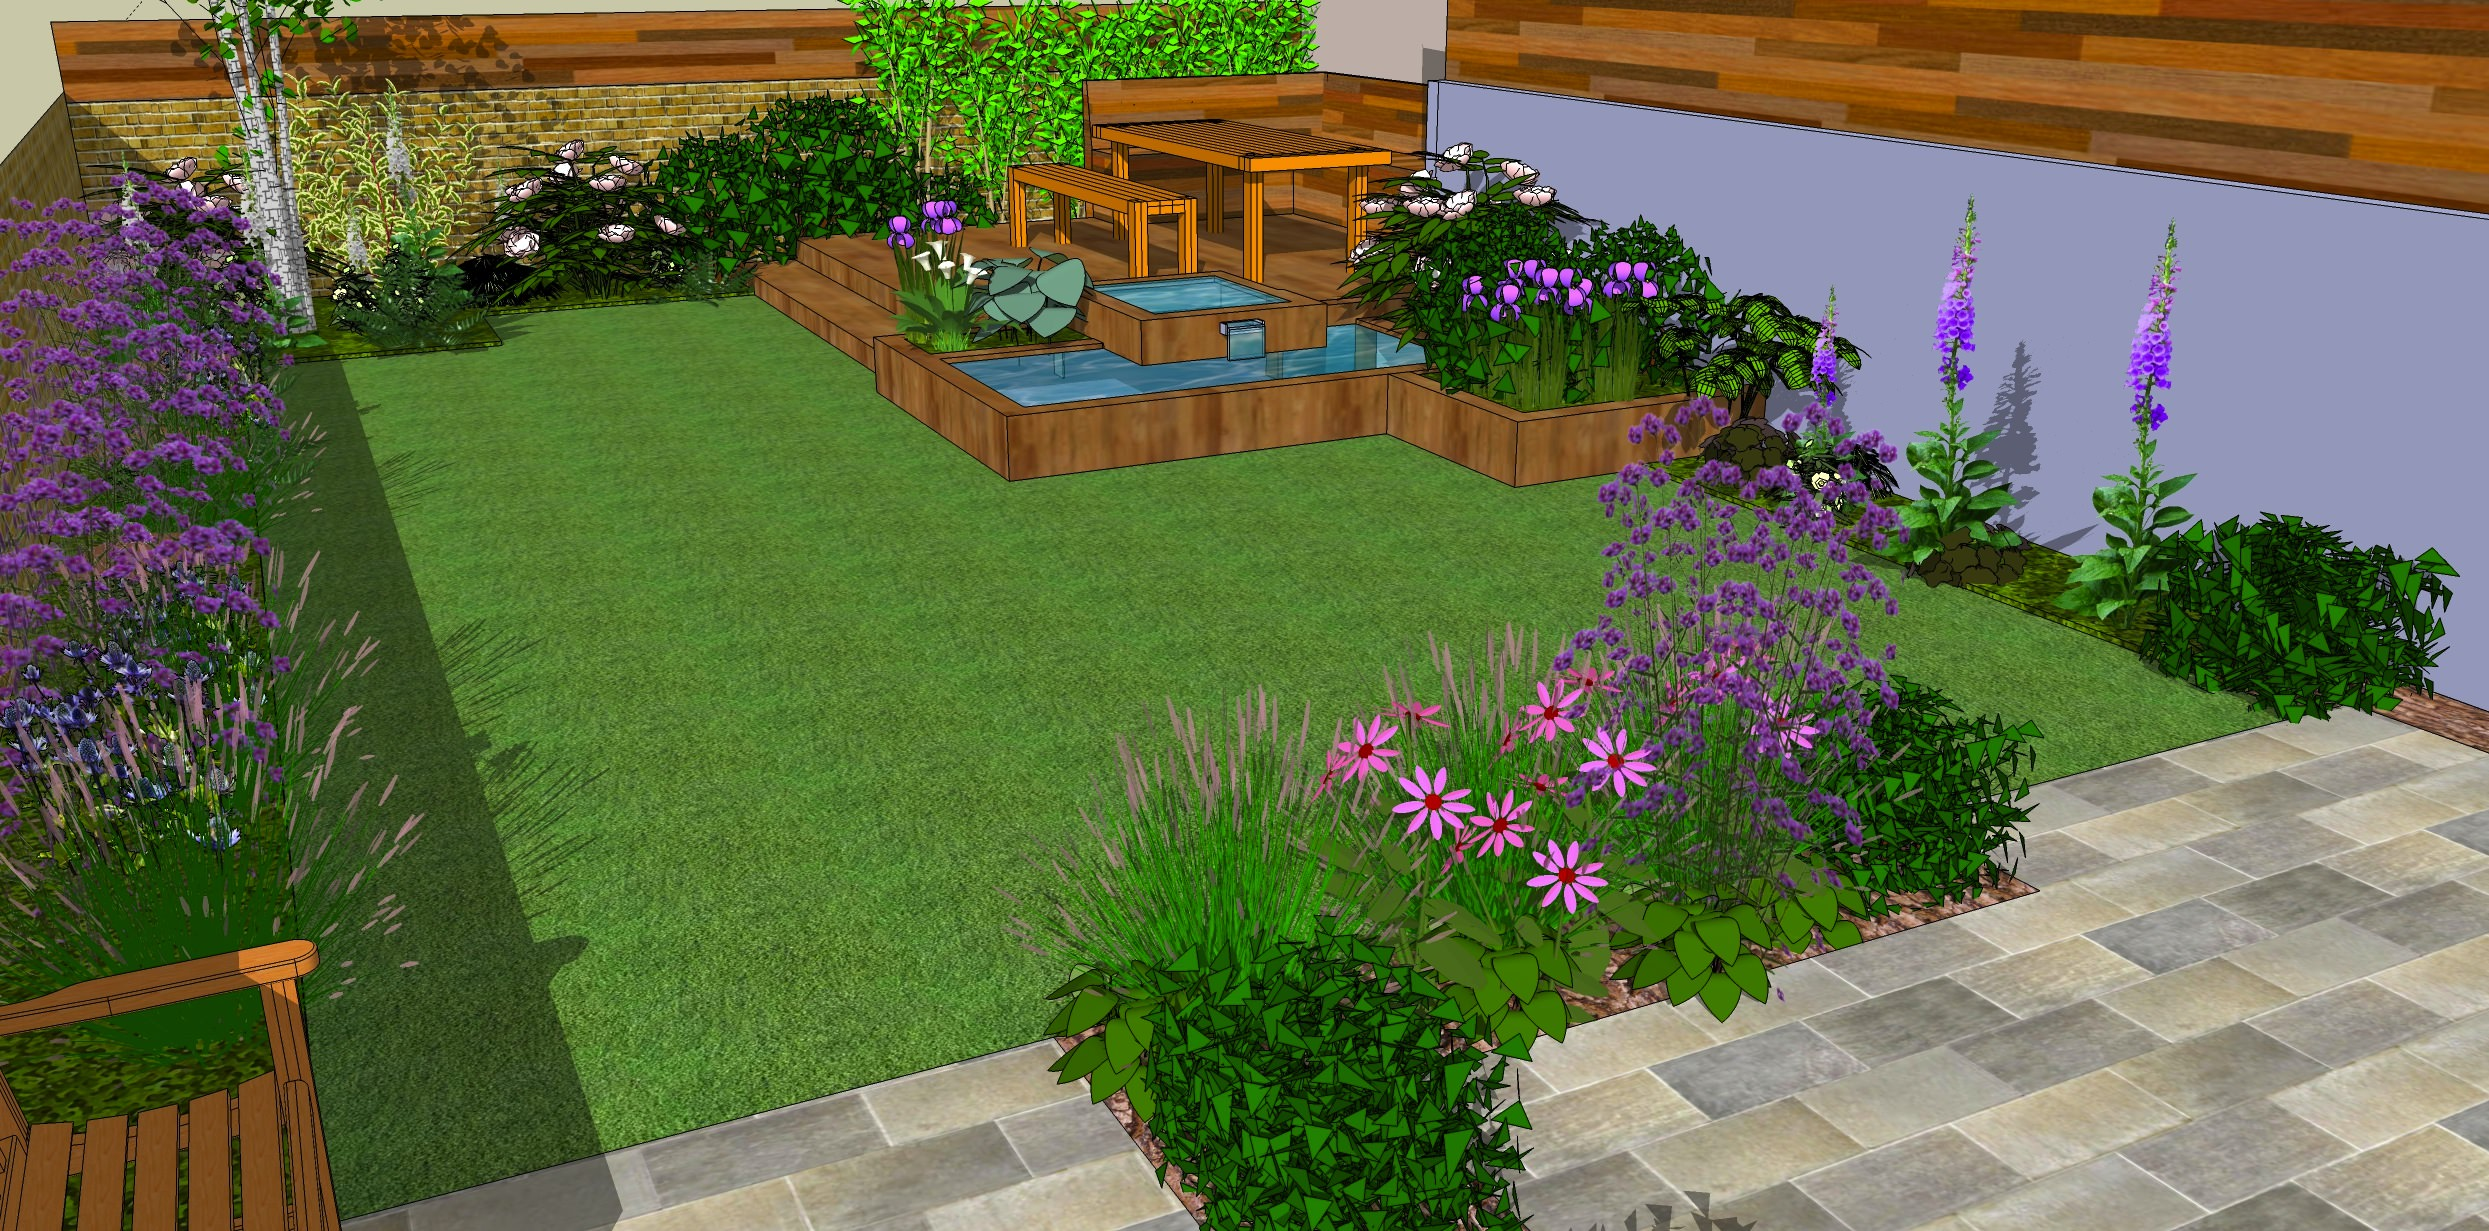 Low Maintenance garden designs - Garden Club London on Patio And Grass Garden Ideas id=80954